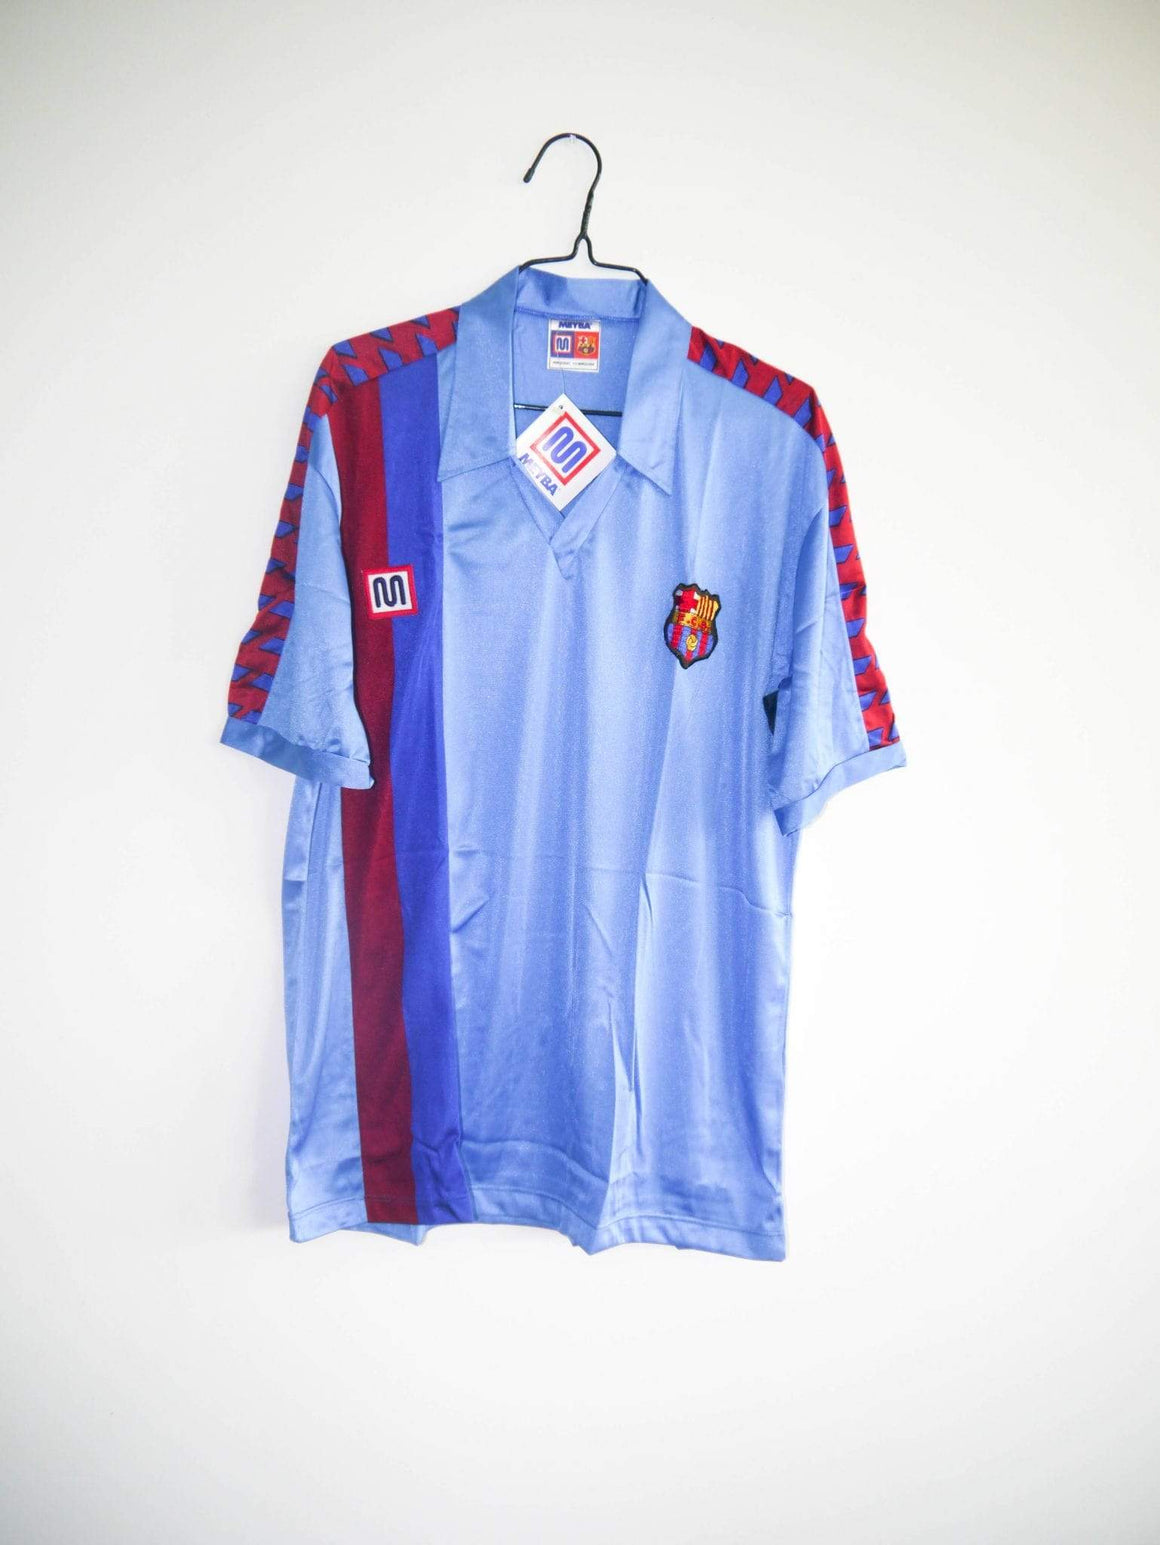 1986-91 FC Barcelona *BNWT* third shirt - Football Shirt Collective